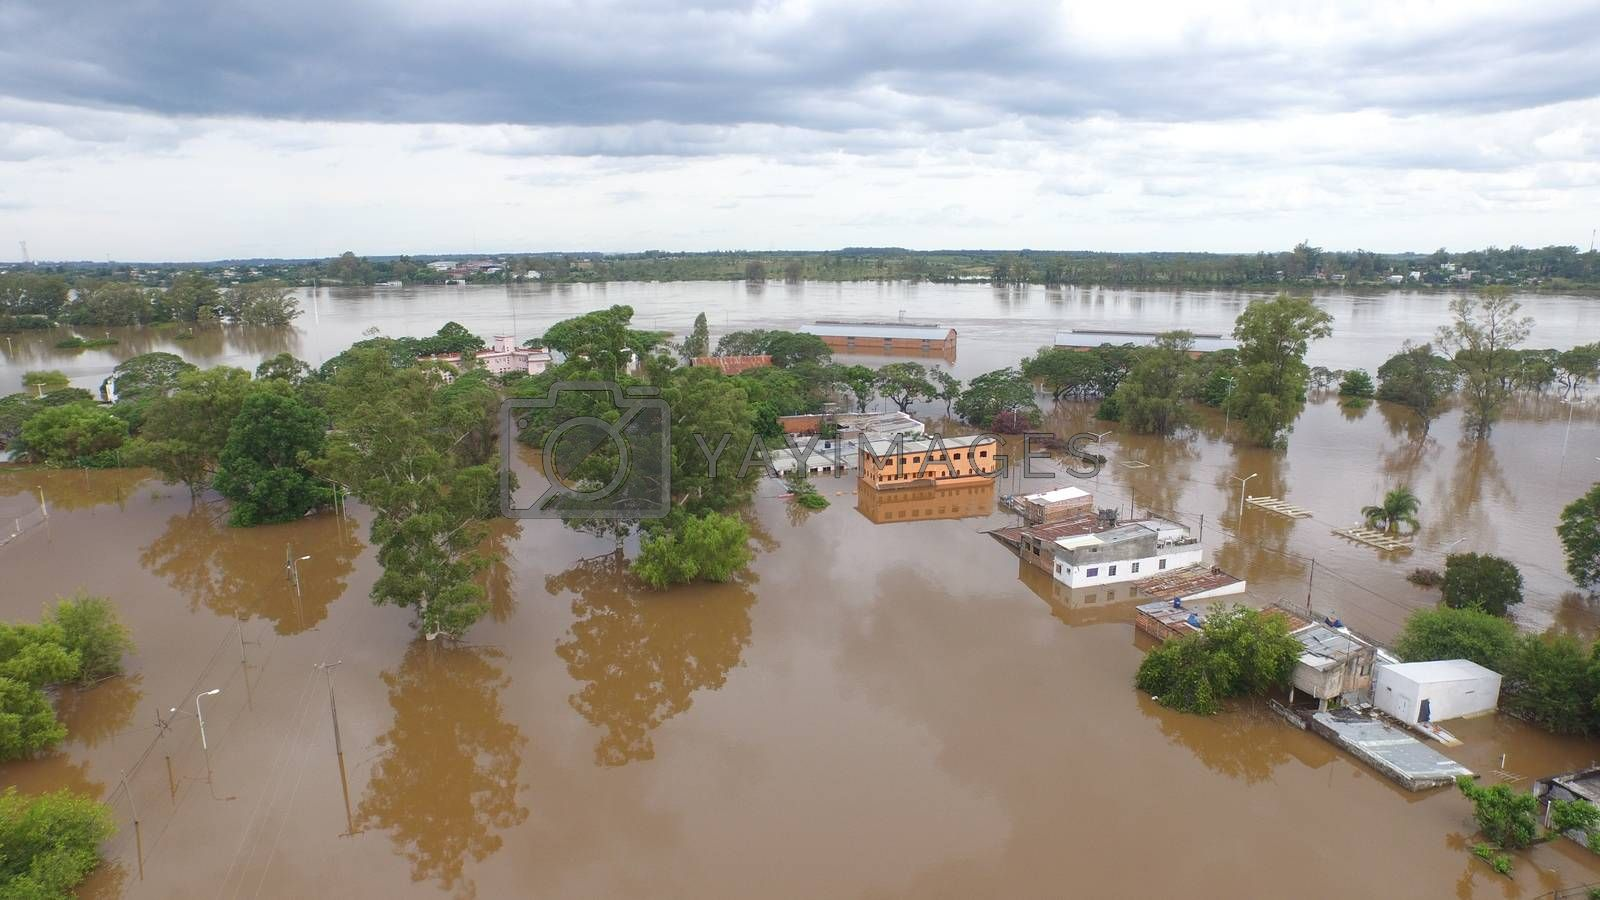 ARGENTINA, Concordia: Drone footage shows the flooded city of Concordia, Argentina on December 28, 2015. The flooding, caused by a dramatic rise in the level of the Rio Uruguay, had begun more than one week prior. The floods have caused the evacuation of more than 170,000 people in Uruguay, Paraguay, northern Argentina, and southern Brazil.